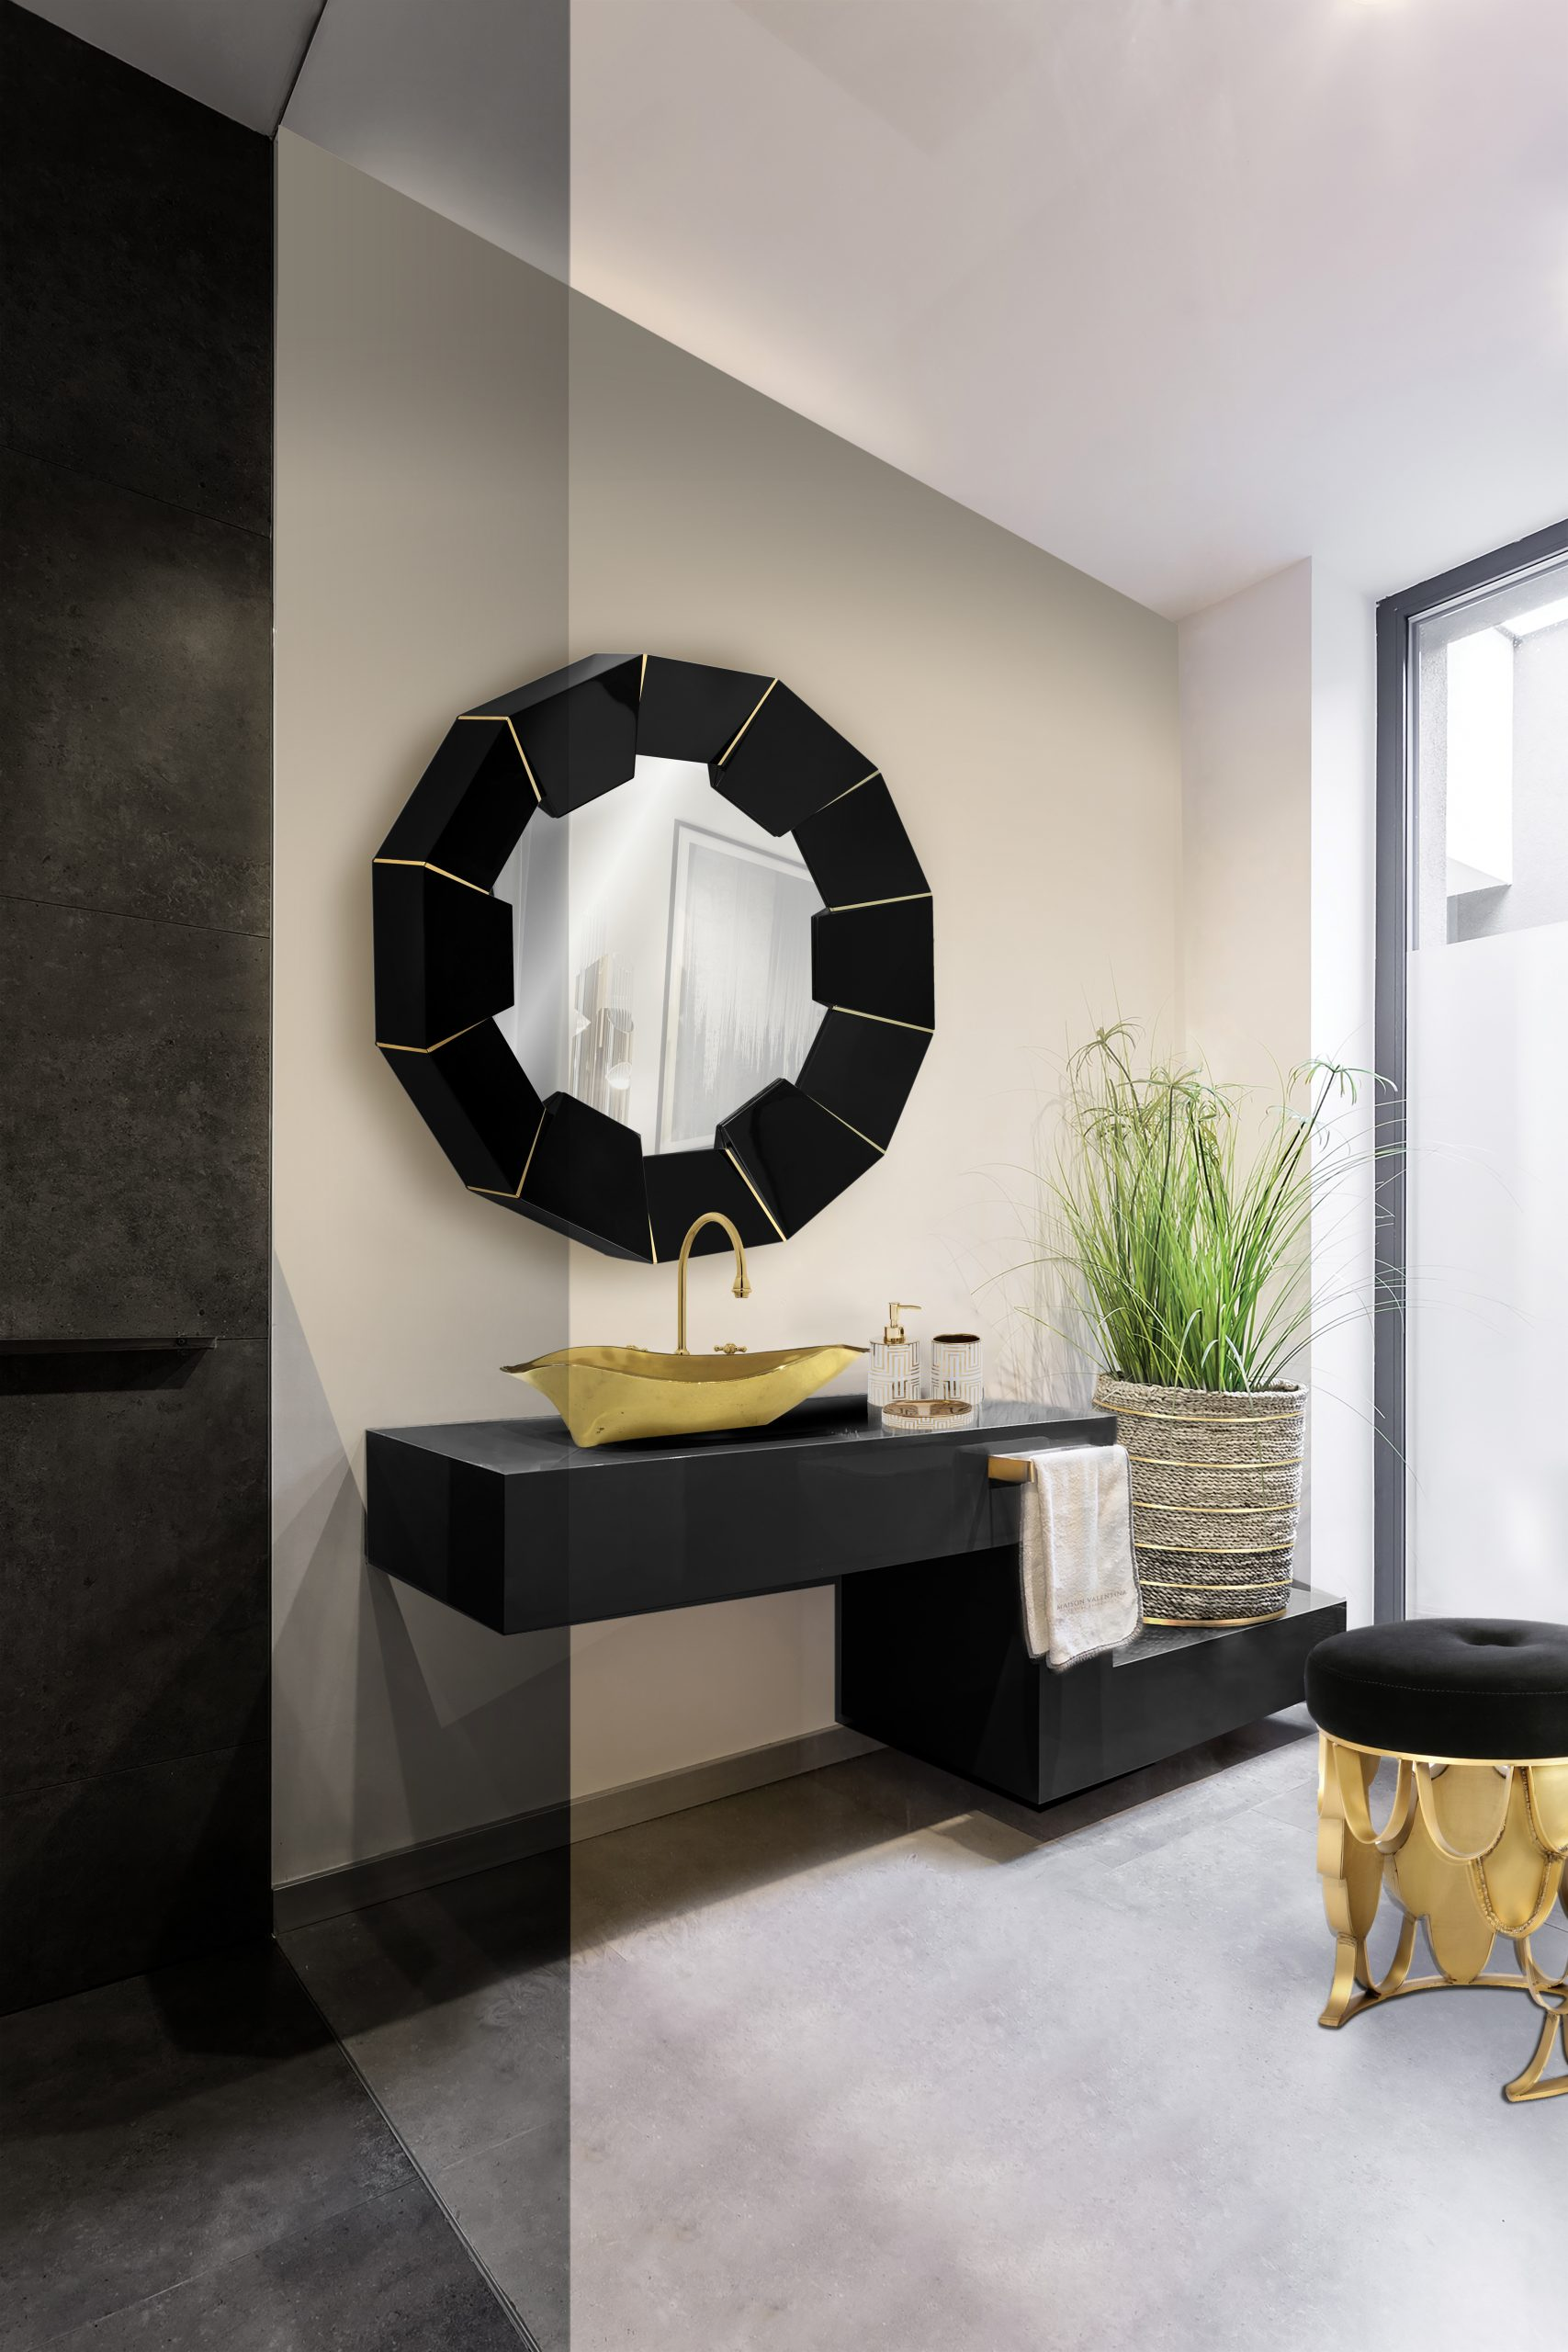 mirror designs mirror designs Mirror designs that will glamour your house darian black mirror cover 02 scaled